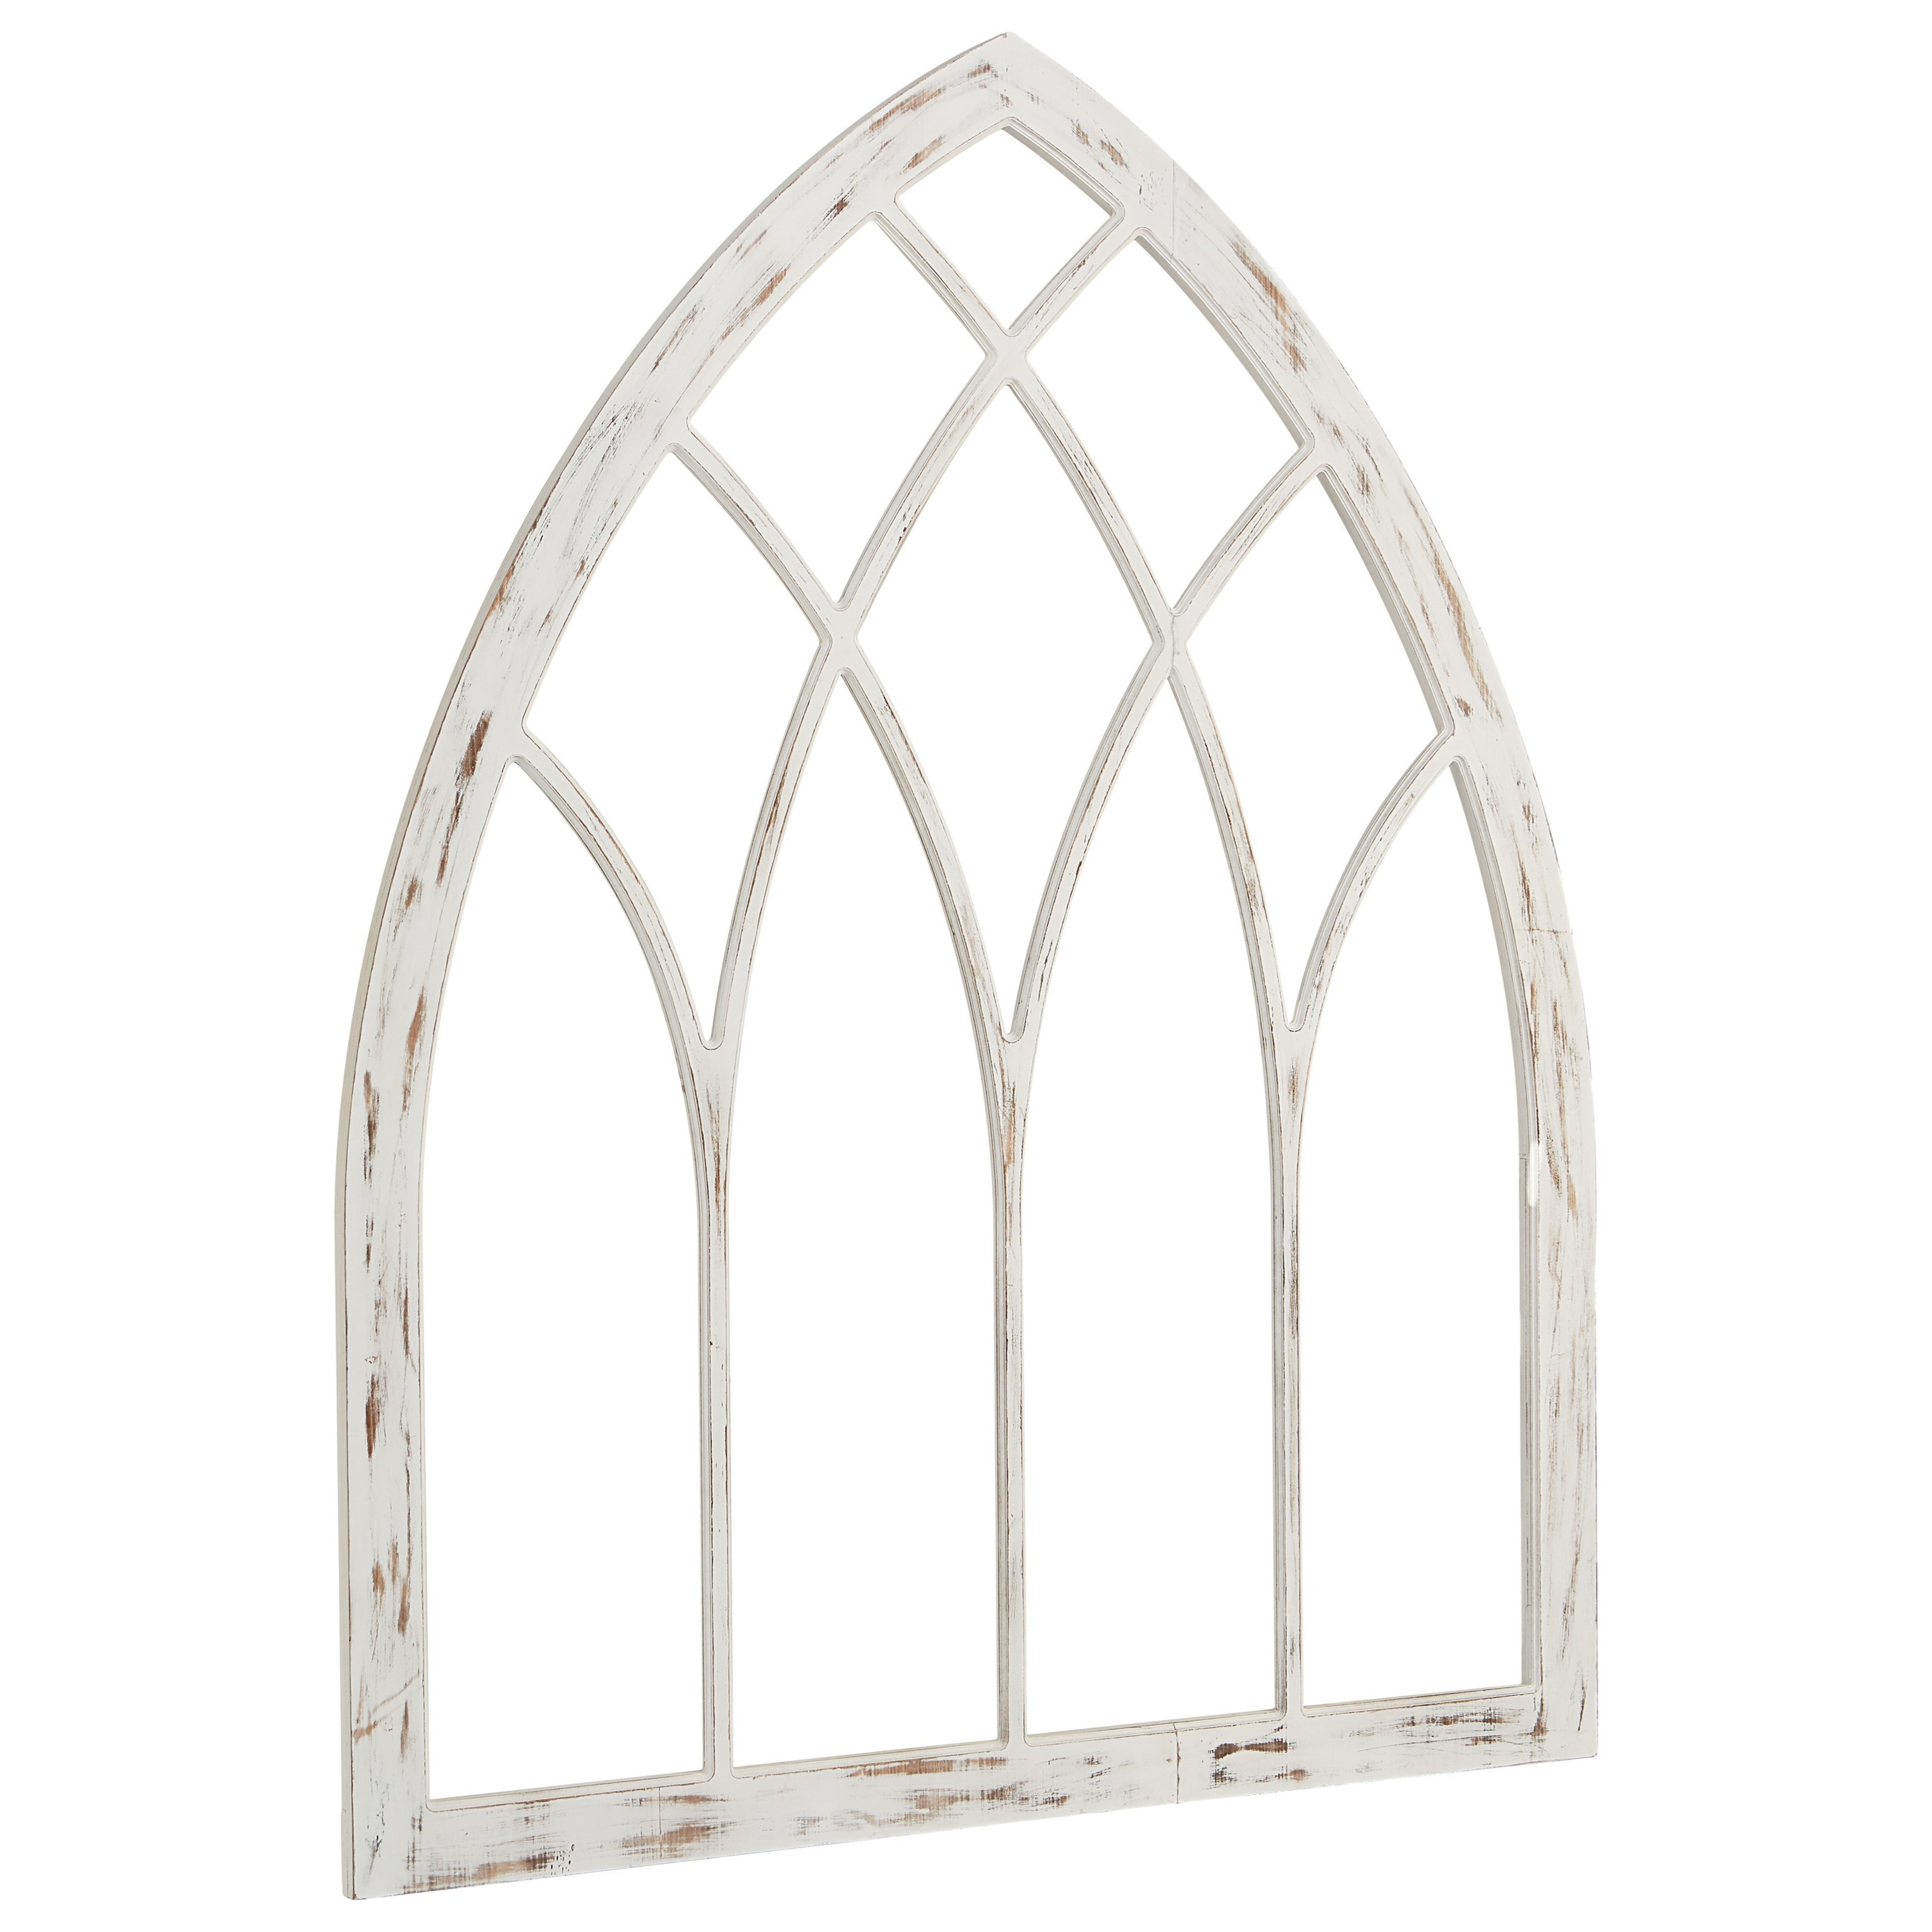 Arch window wall d cor by magnolia home by joanna gaines for Arch window decoration